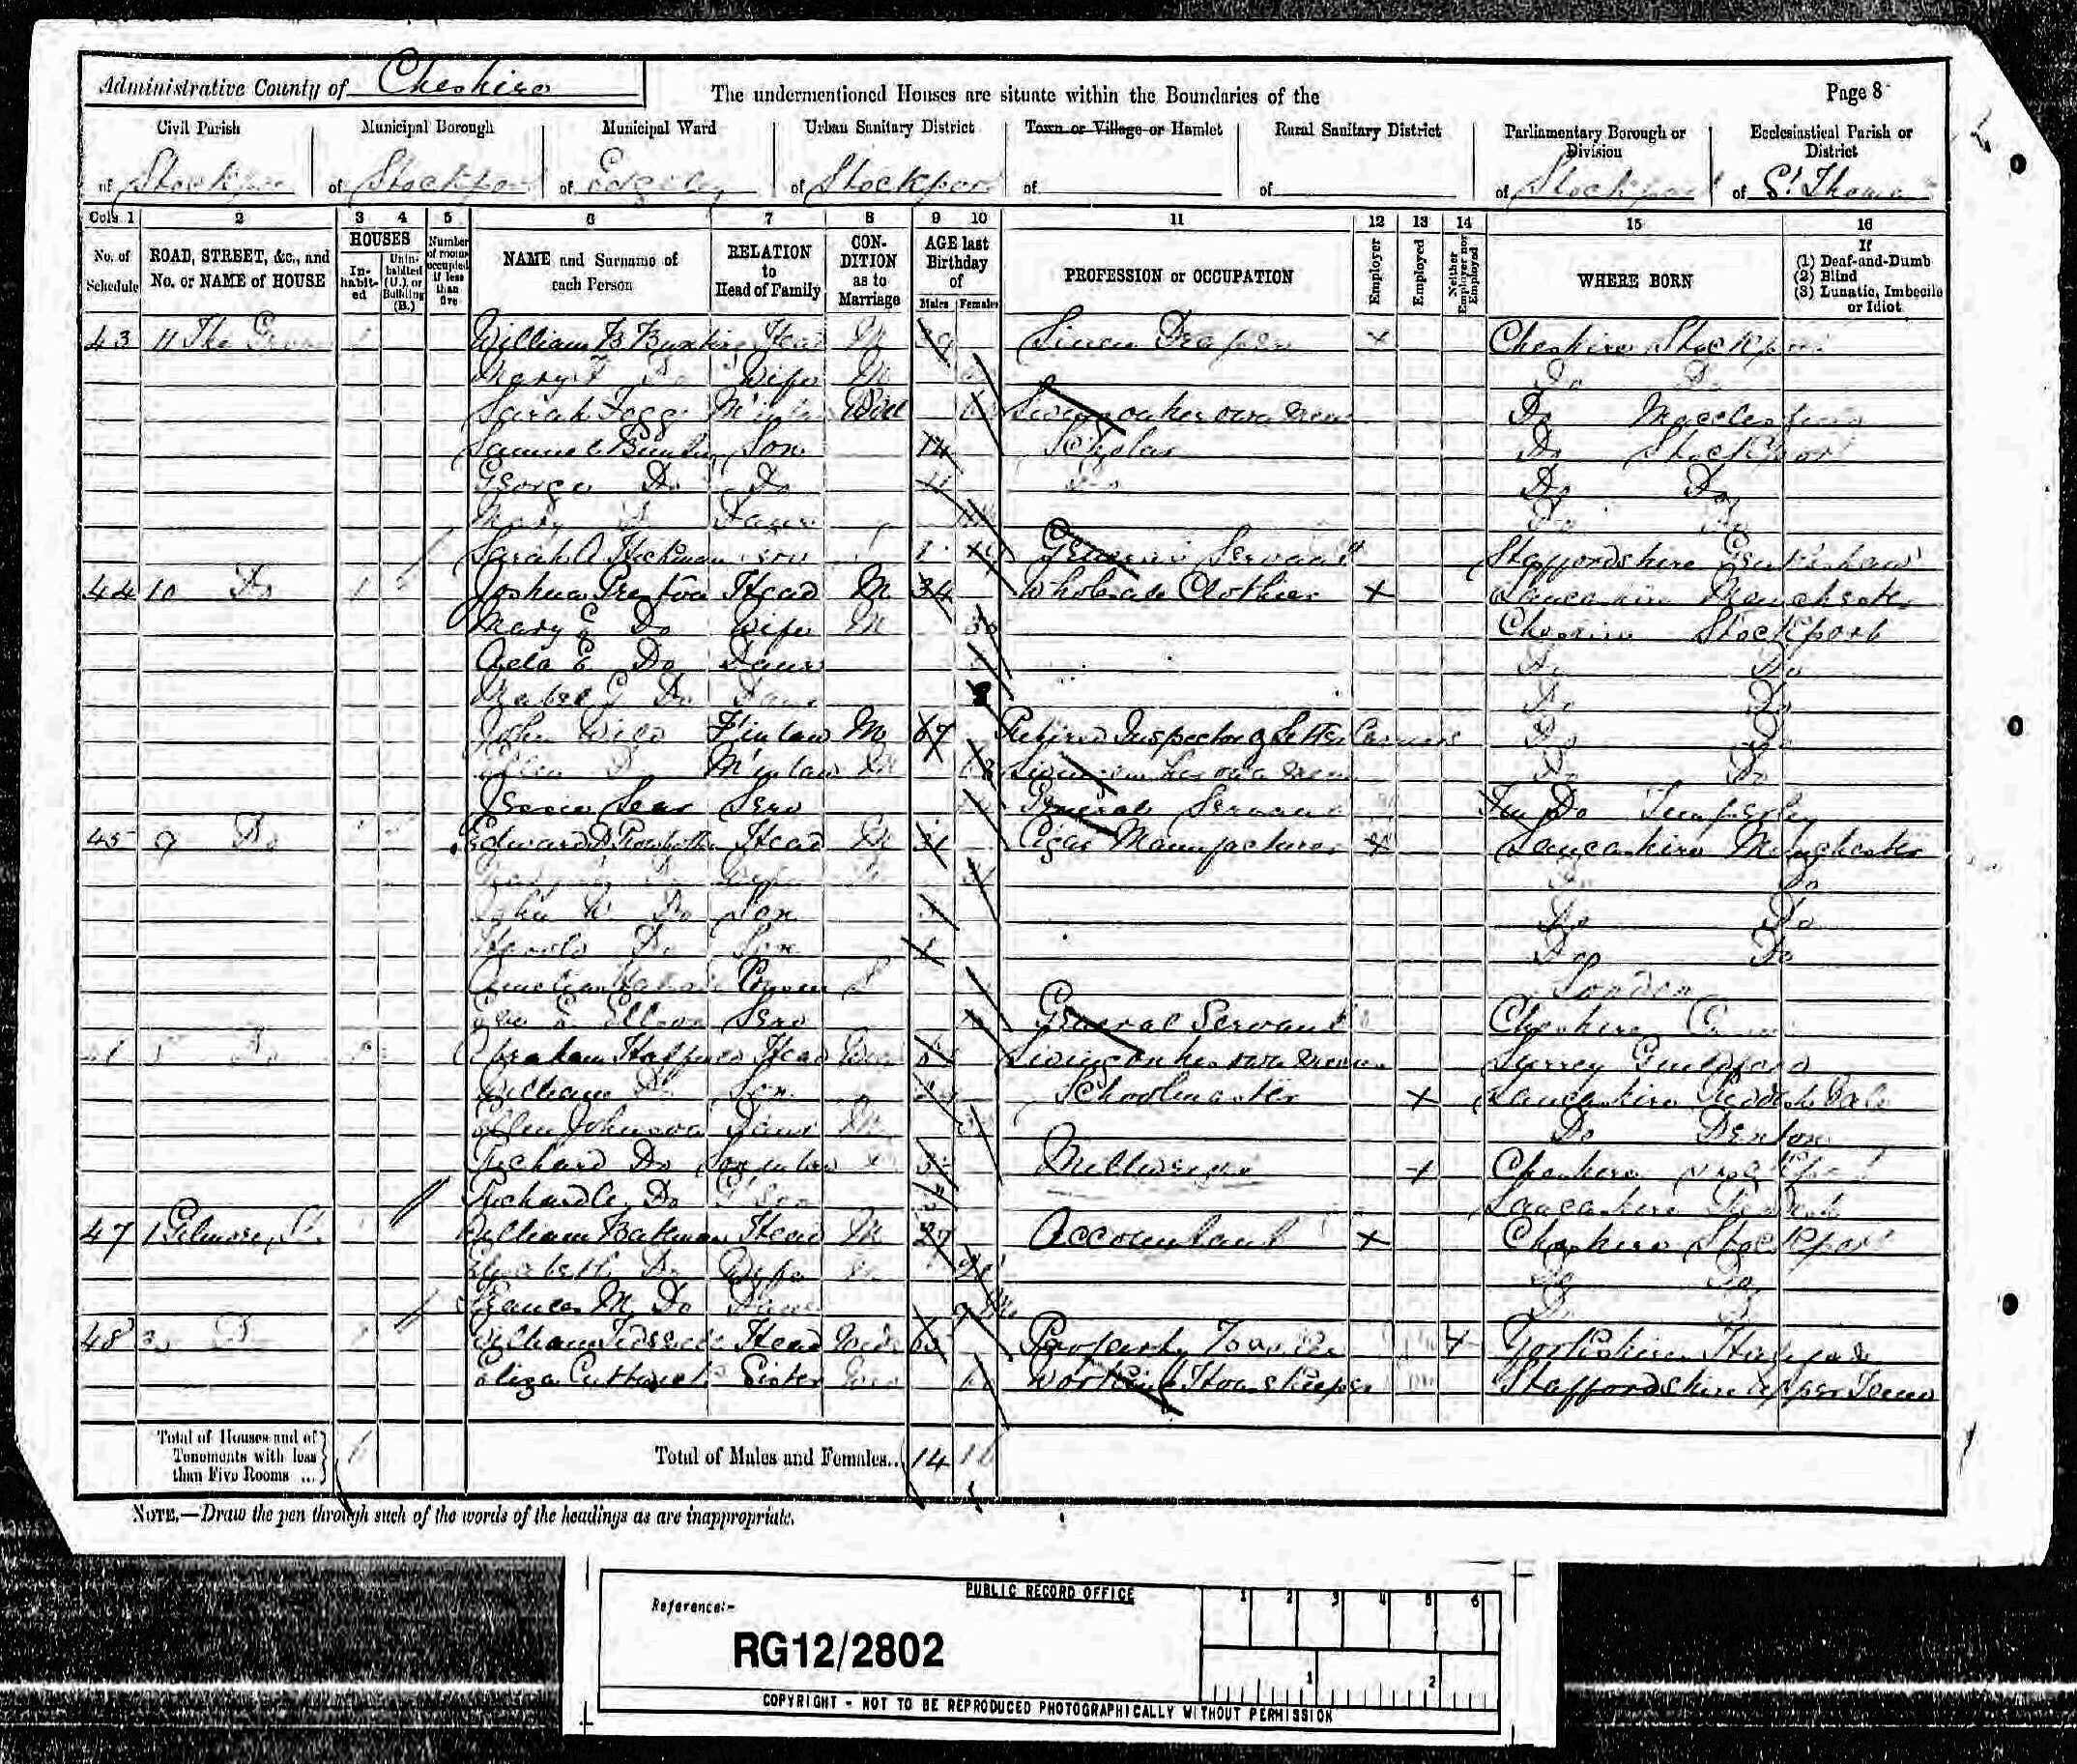 Extract from the 1891 census showing Sarah Hickman working as a servant to the Bunting family